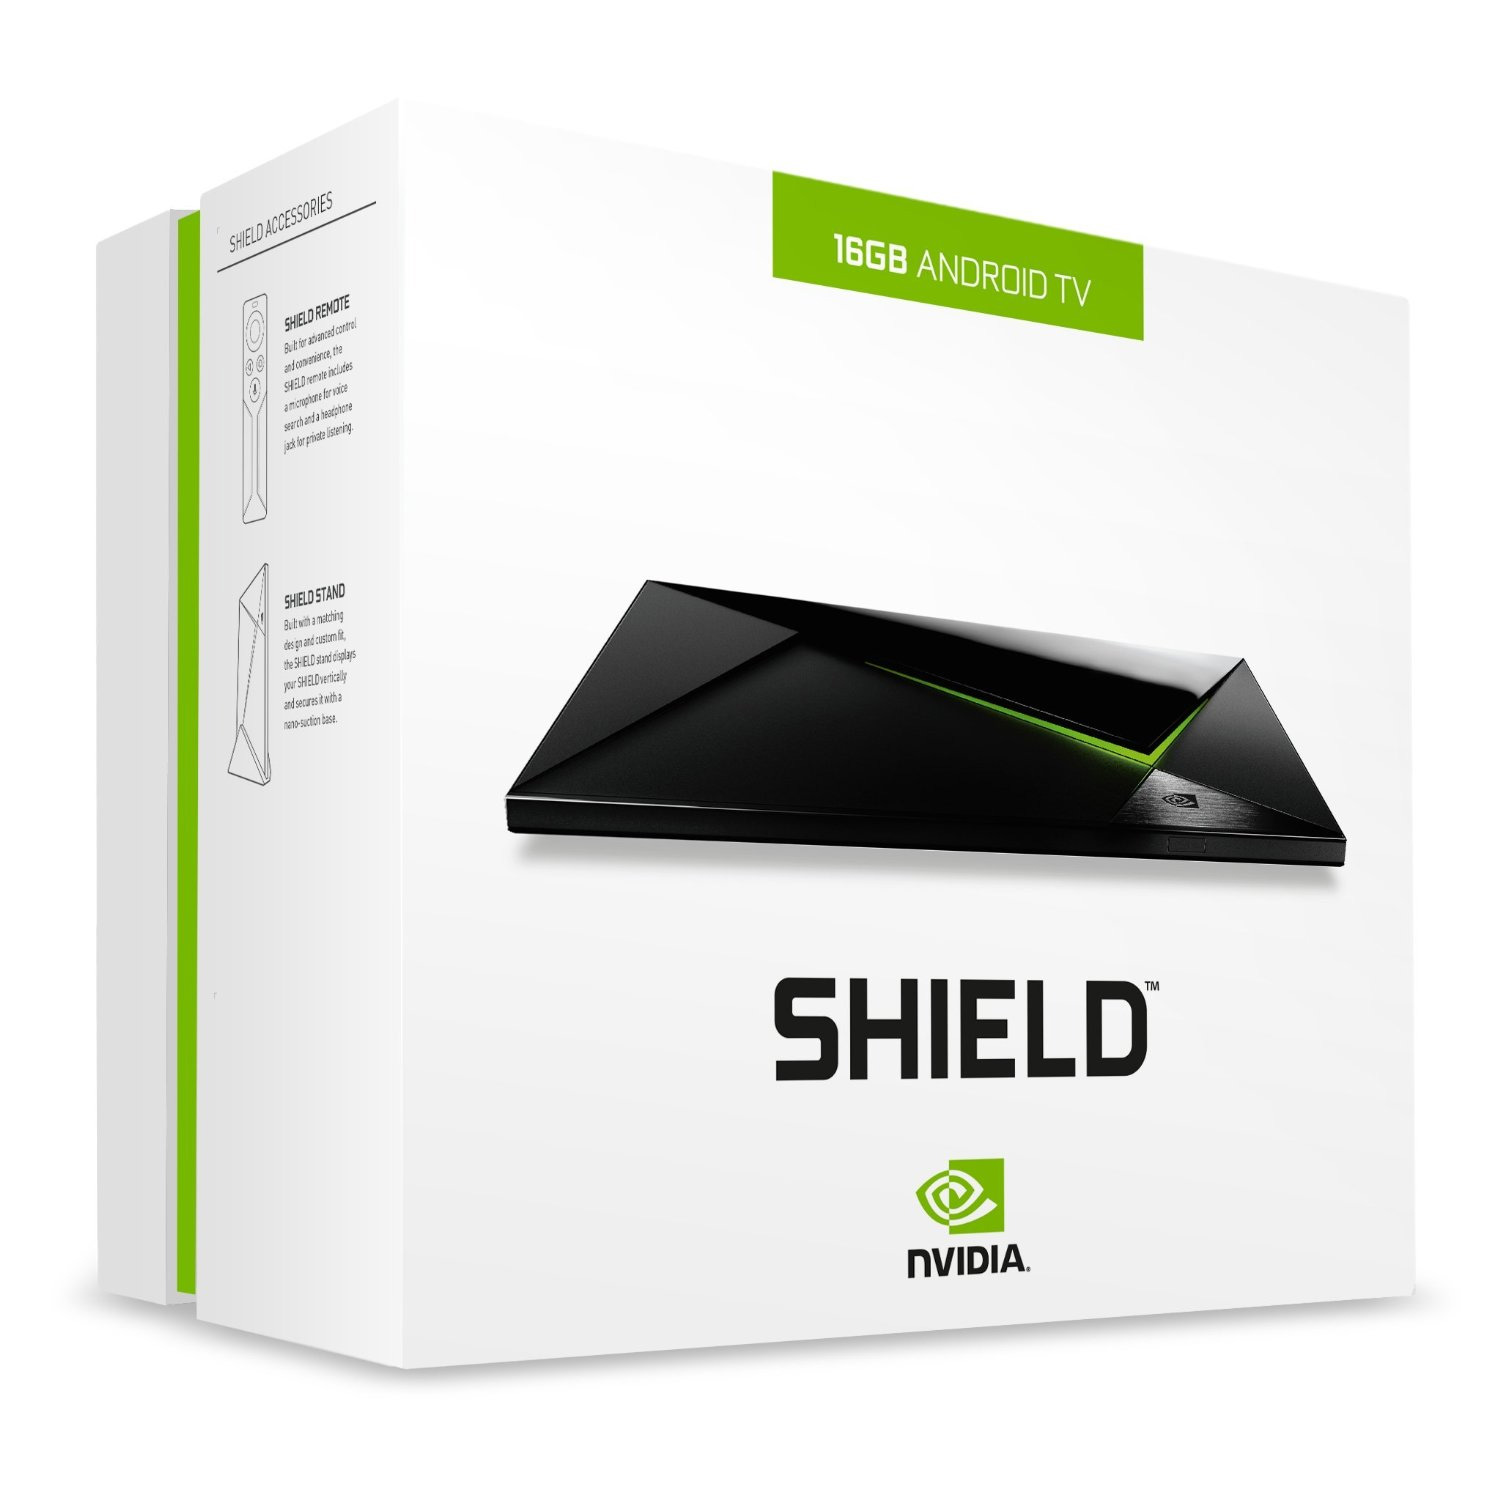 Nvidia SHIELD and SHIELD PRO Listed on Amazon - Tegra X1